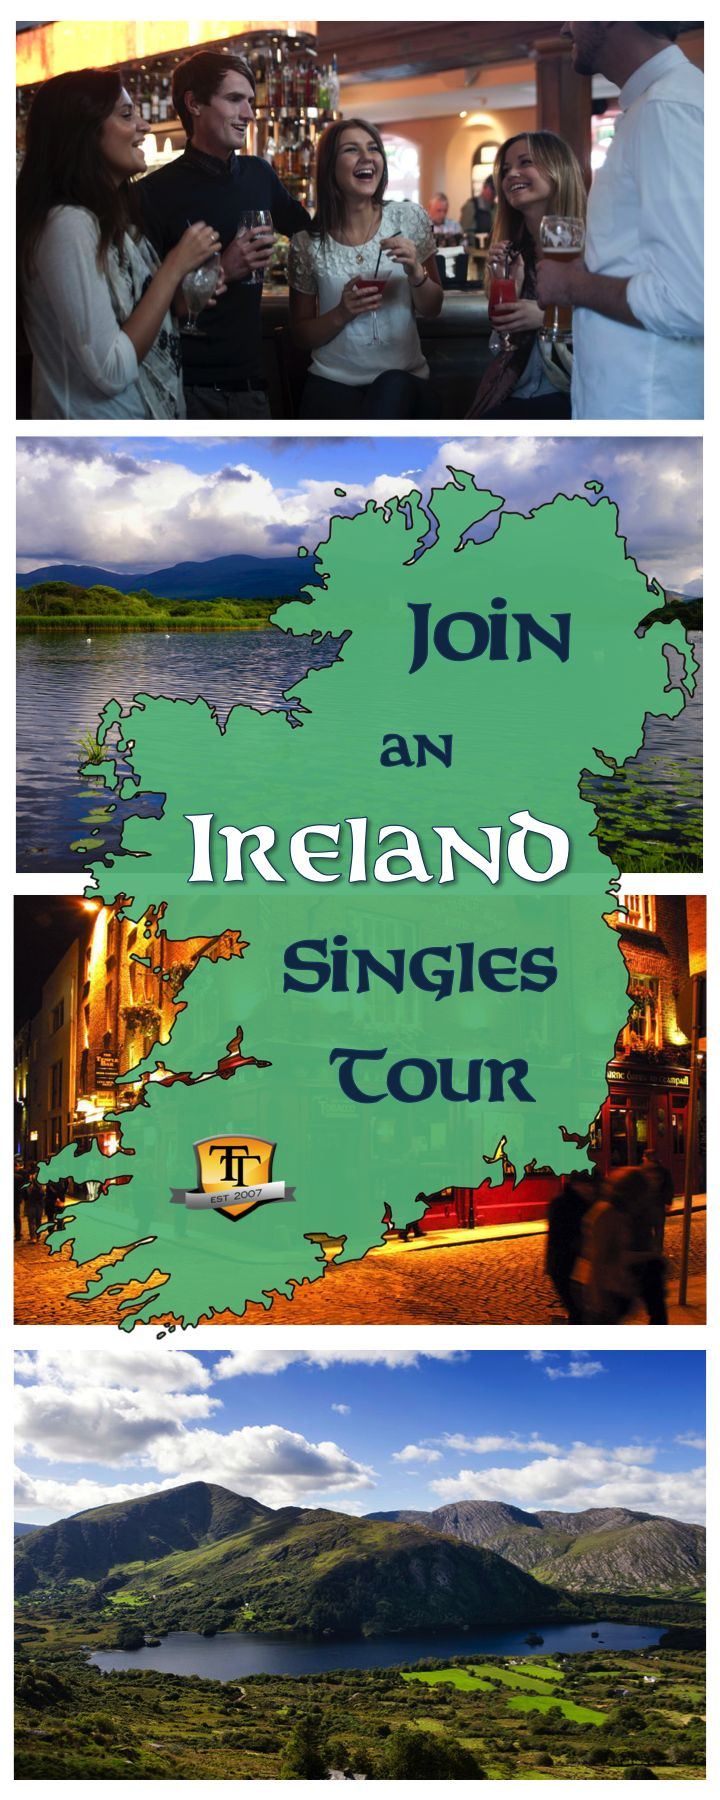 If you're looking for a way to see the best of Ireland with other single travelers, check out our Singles Tour to Ireland. With accommodations, transportation and some day touring included in every package, you'll be able to enjoy tons of free time on your trip while having the necessities all set.